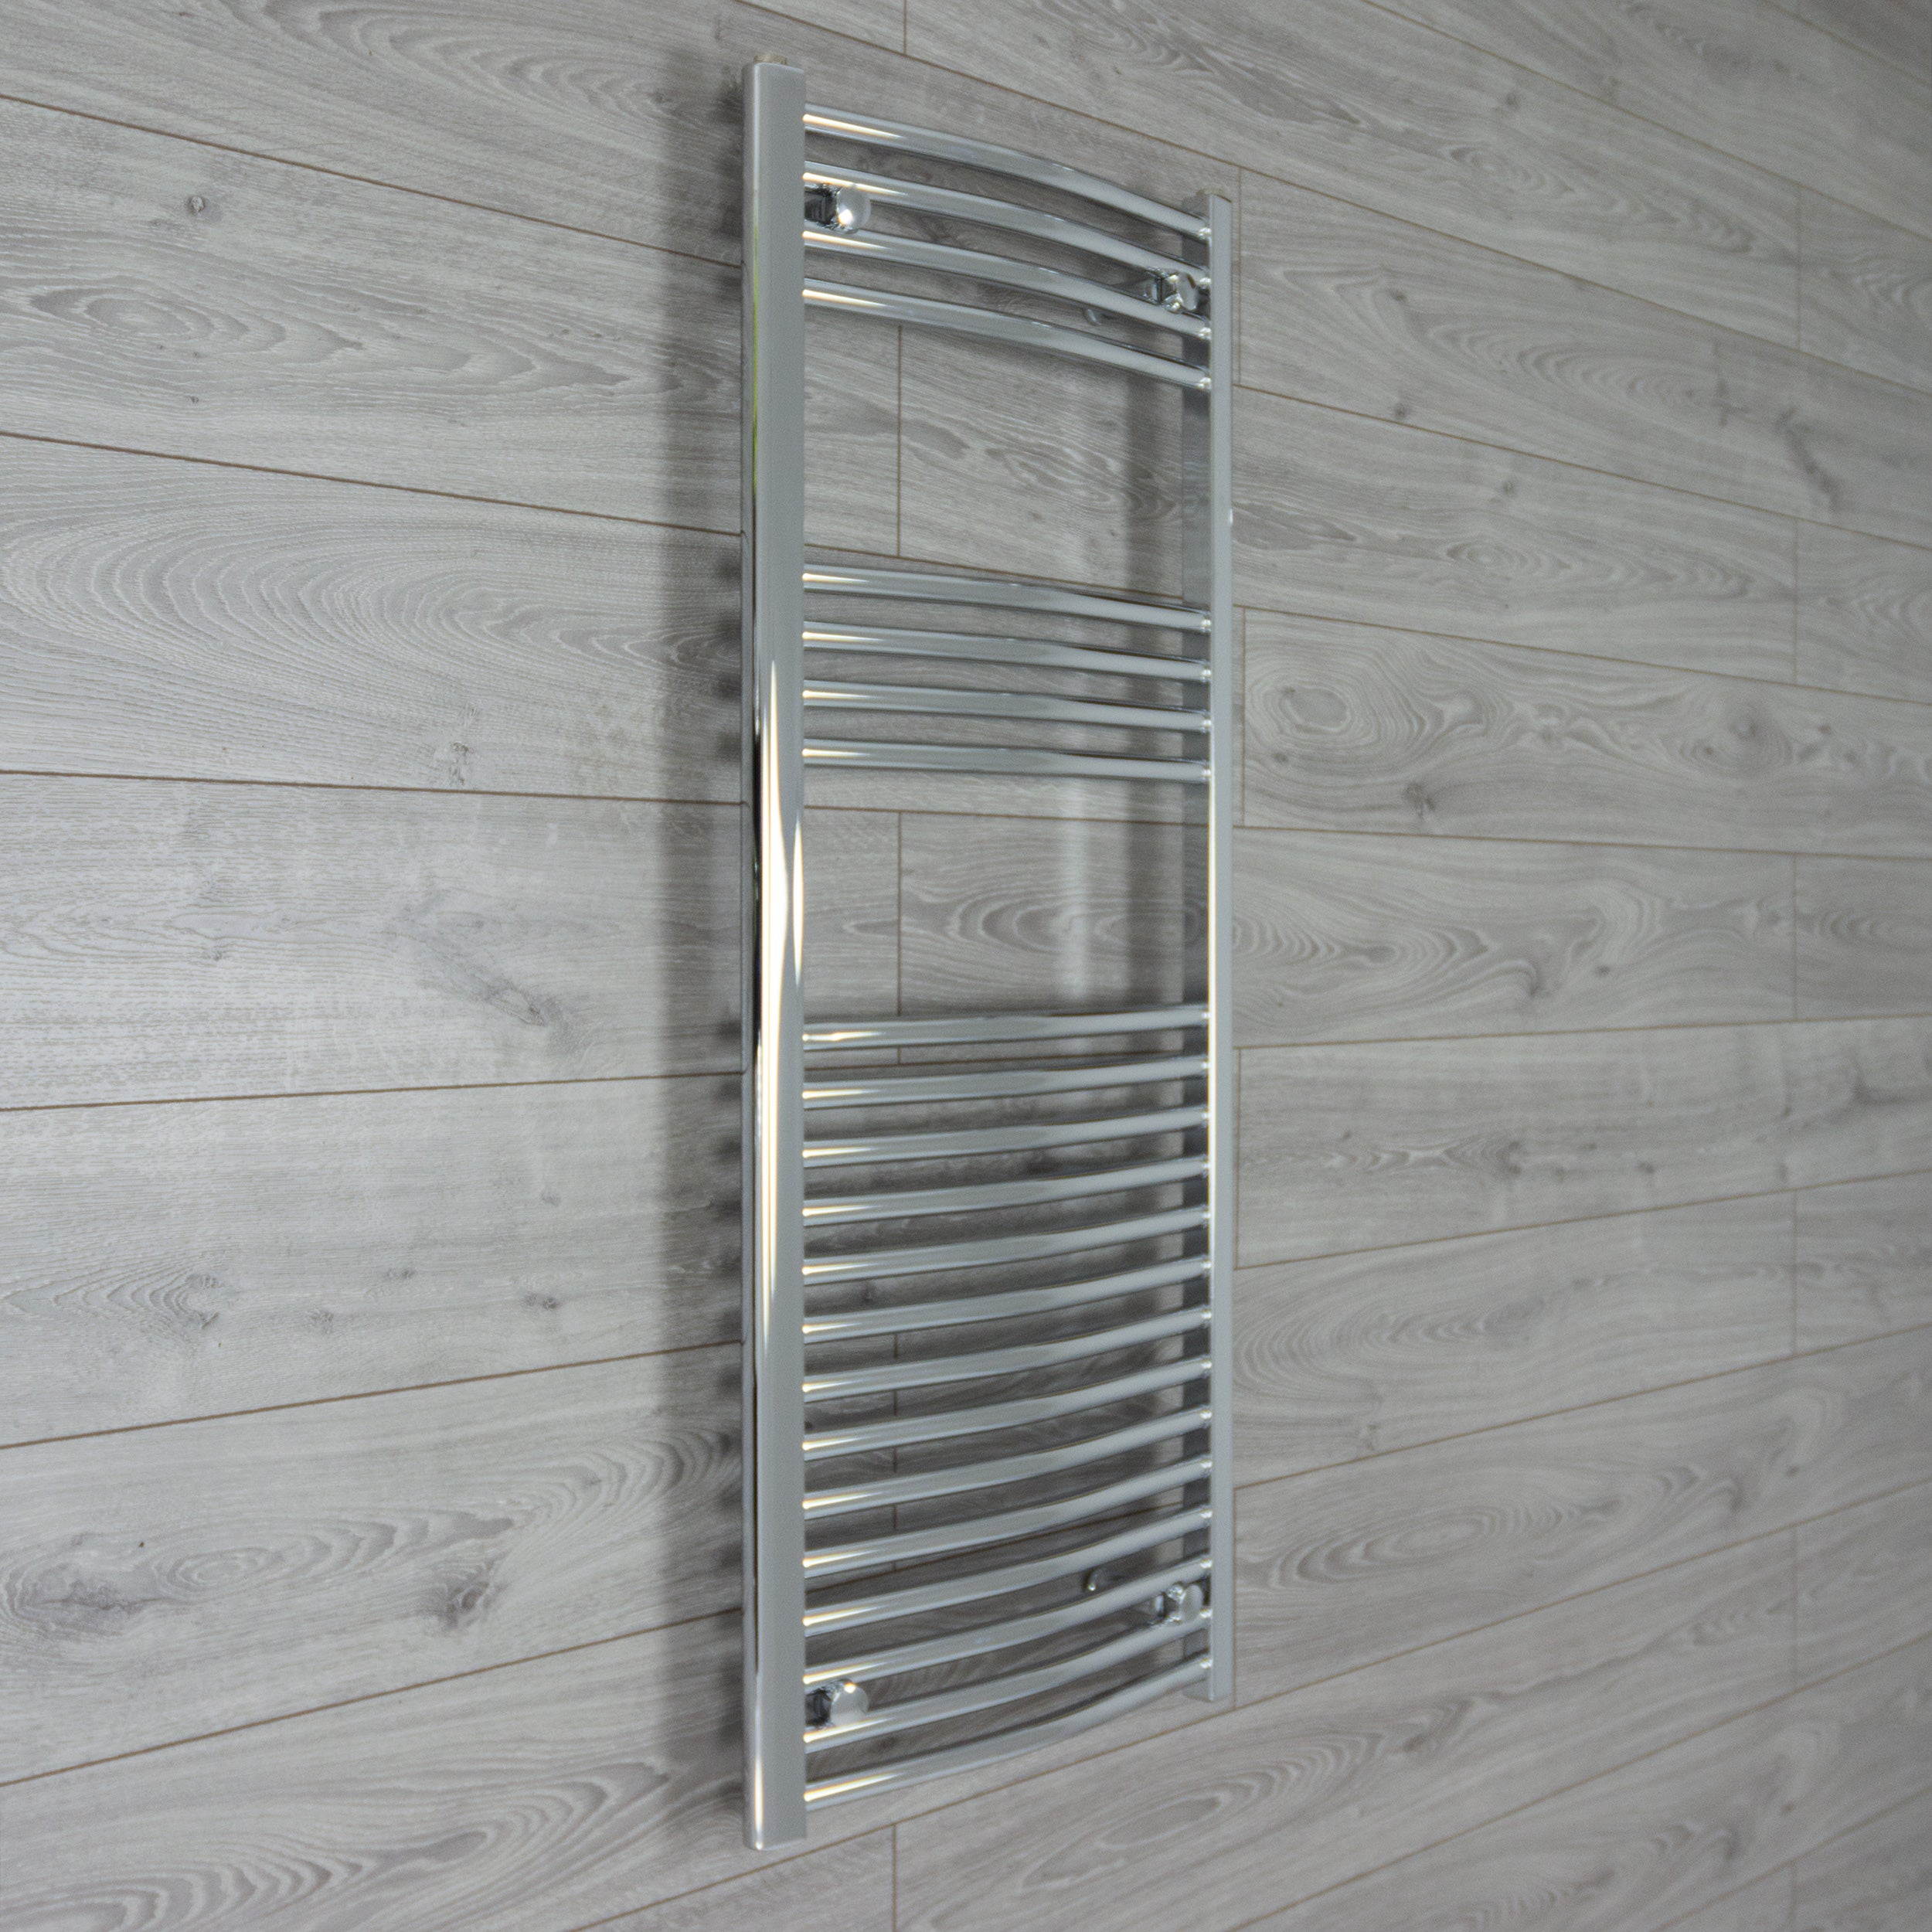 500mm Wide 1200mm High Curved Chrome Heated Towel Rail Radiator HTR,Towel Rail Only